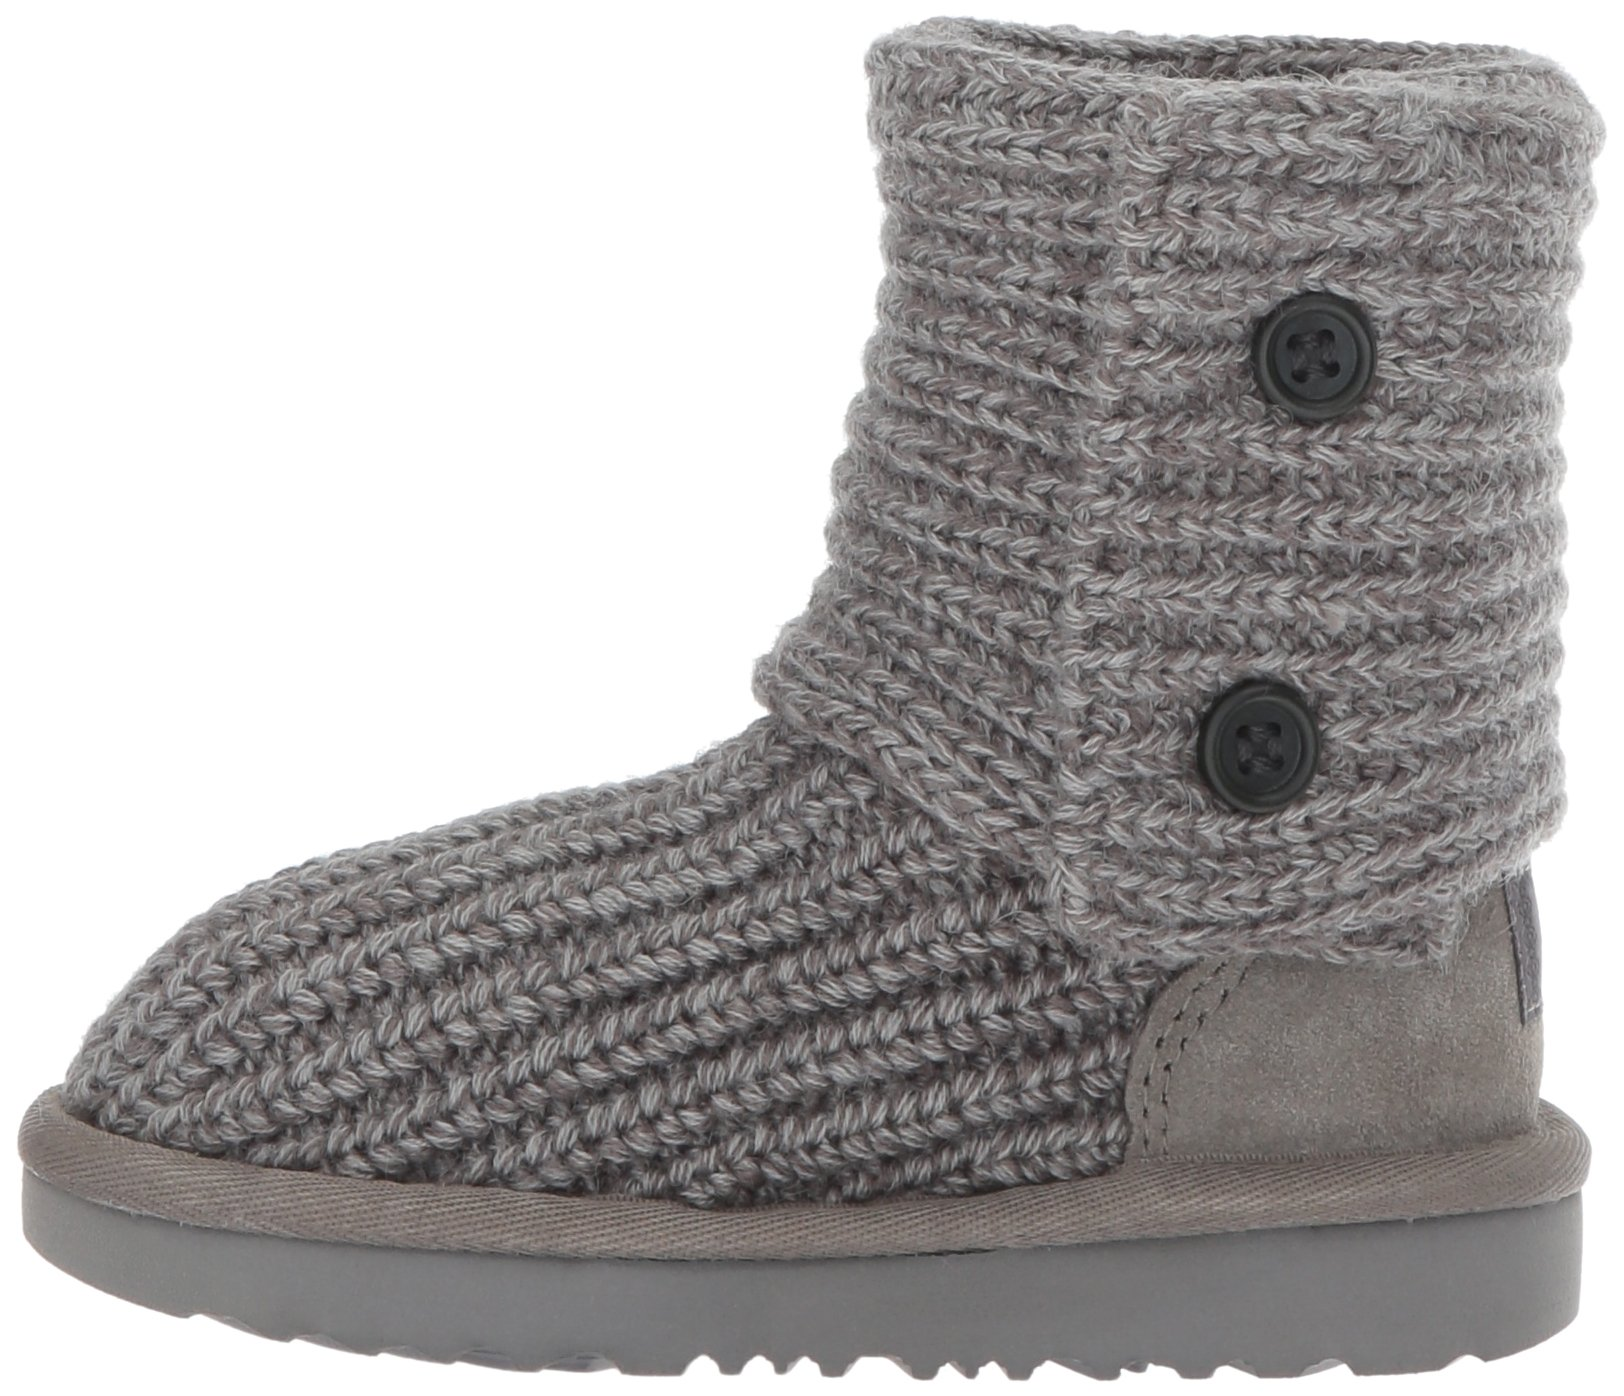 UGG Girls K Cardy II Pull-on Boot, Grey, 13 M US Little Kid by UGG (Image #5)